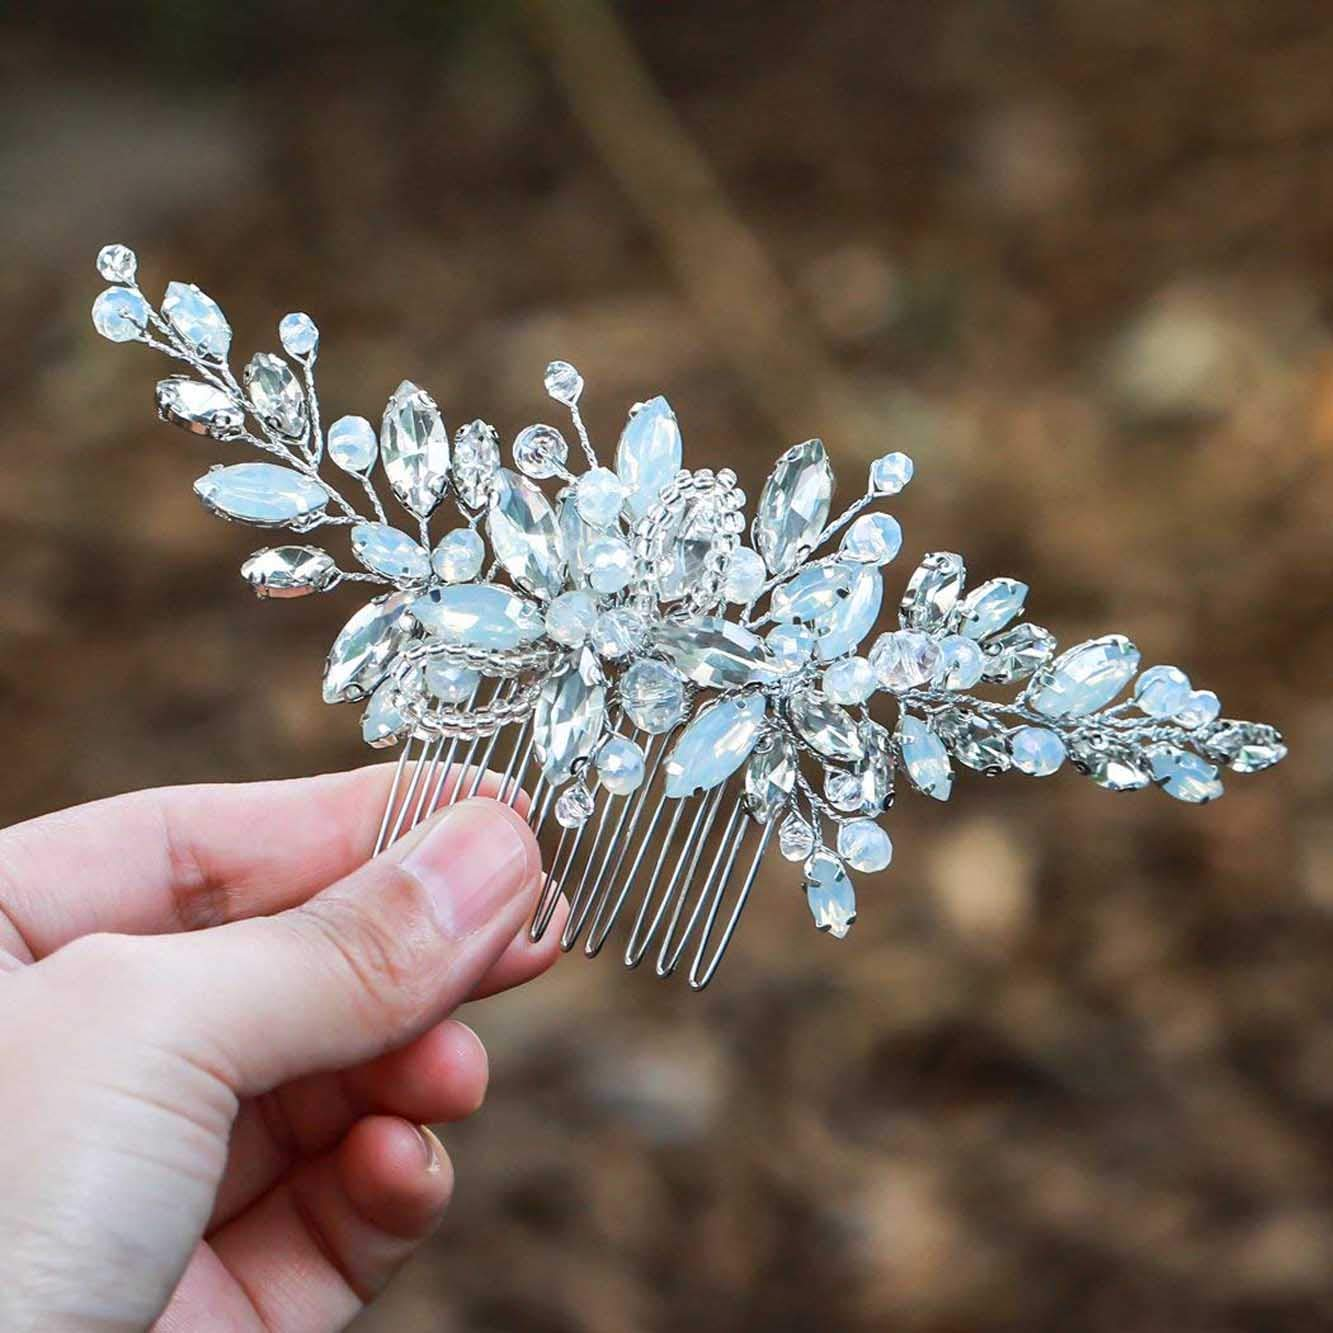 Unicra Wedding Ivory Crystal Hair Combs Wedding Bridal Hair Accessories for Brides and Bridesmaids (Silver)